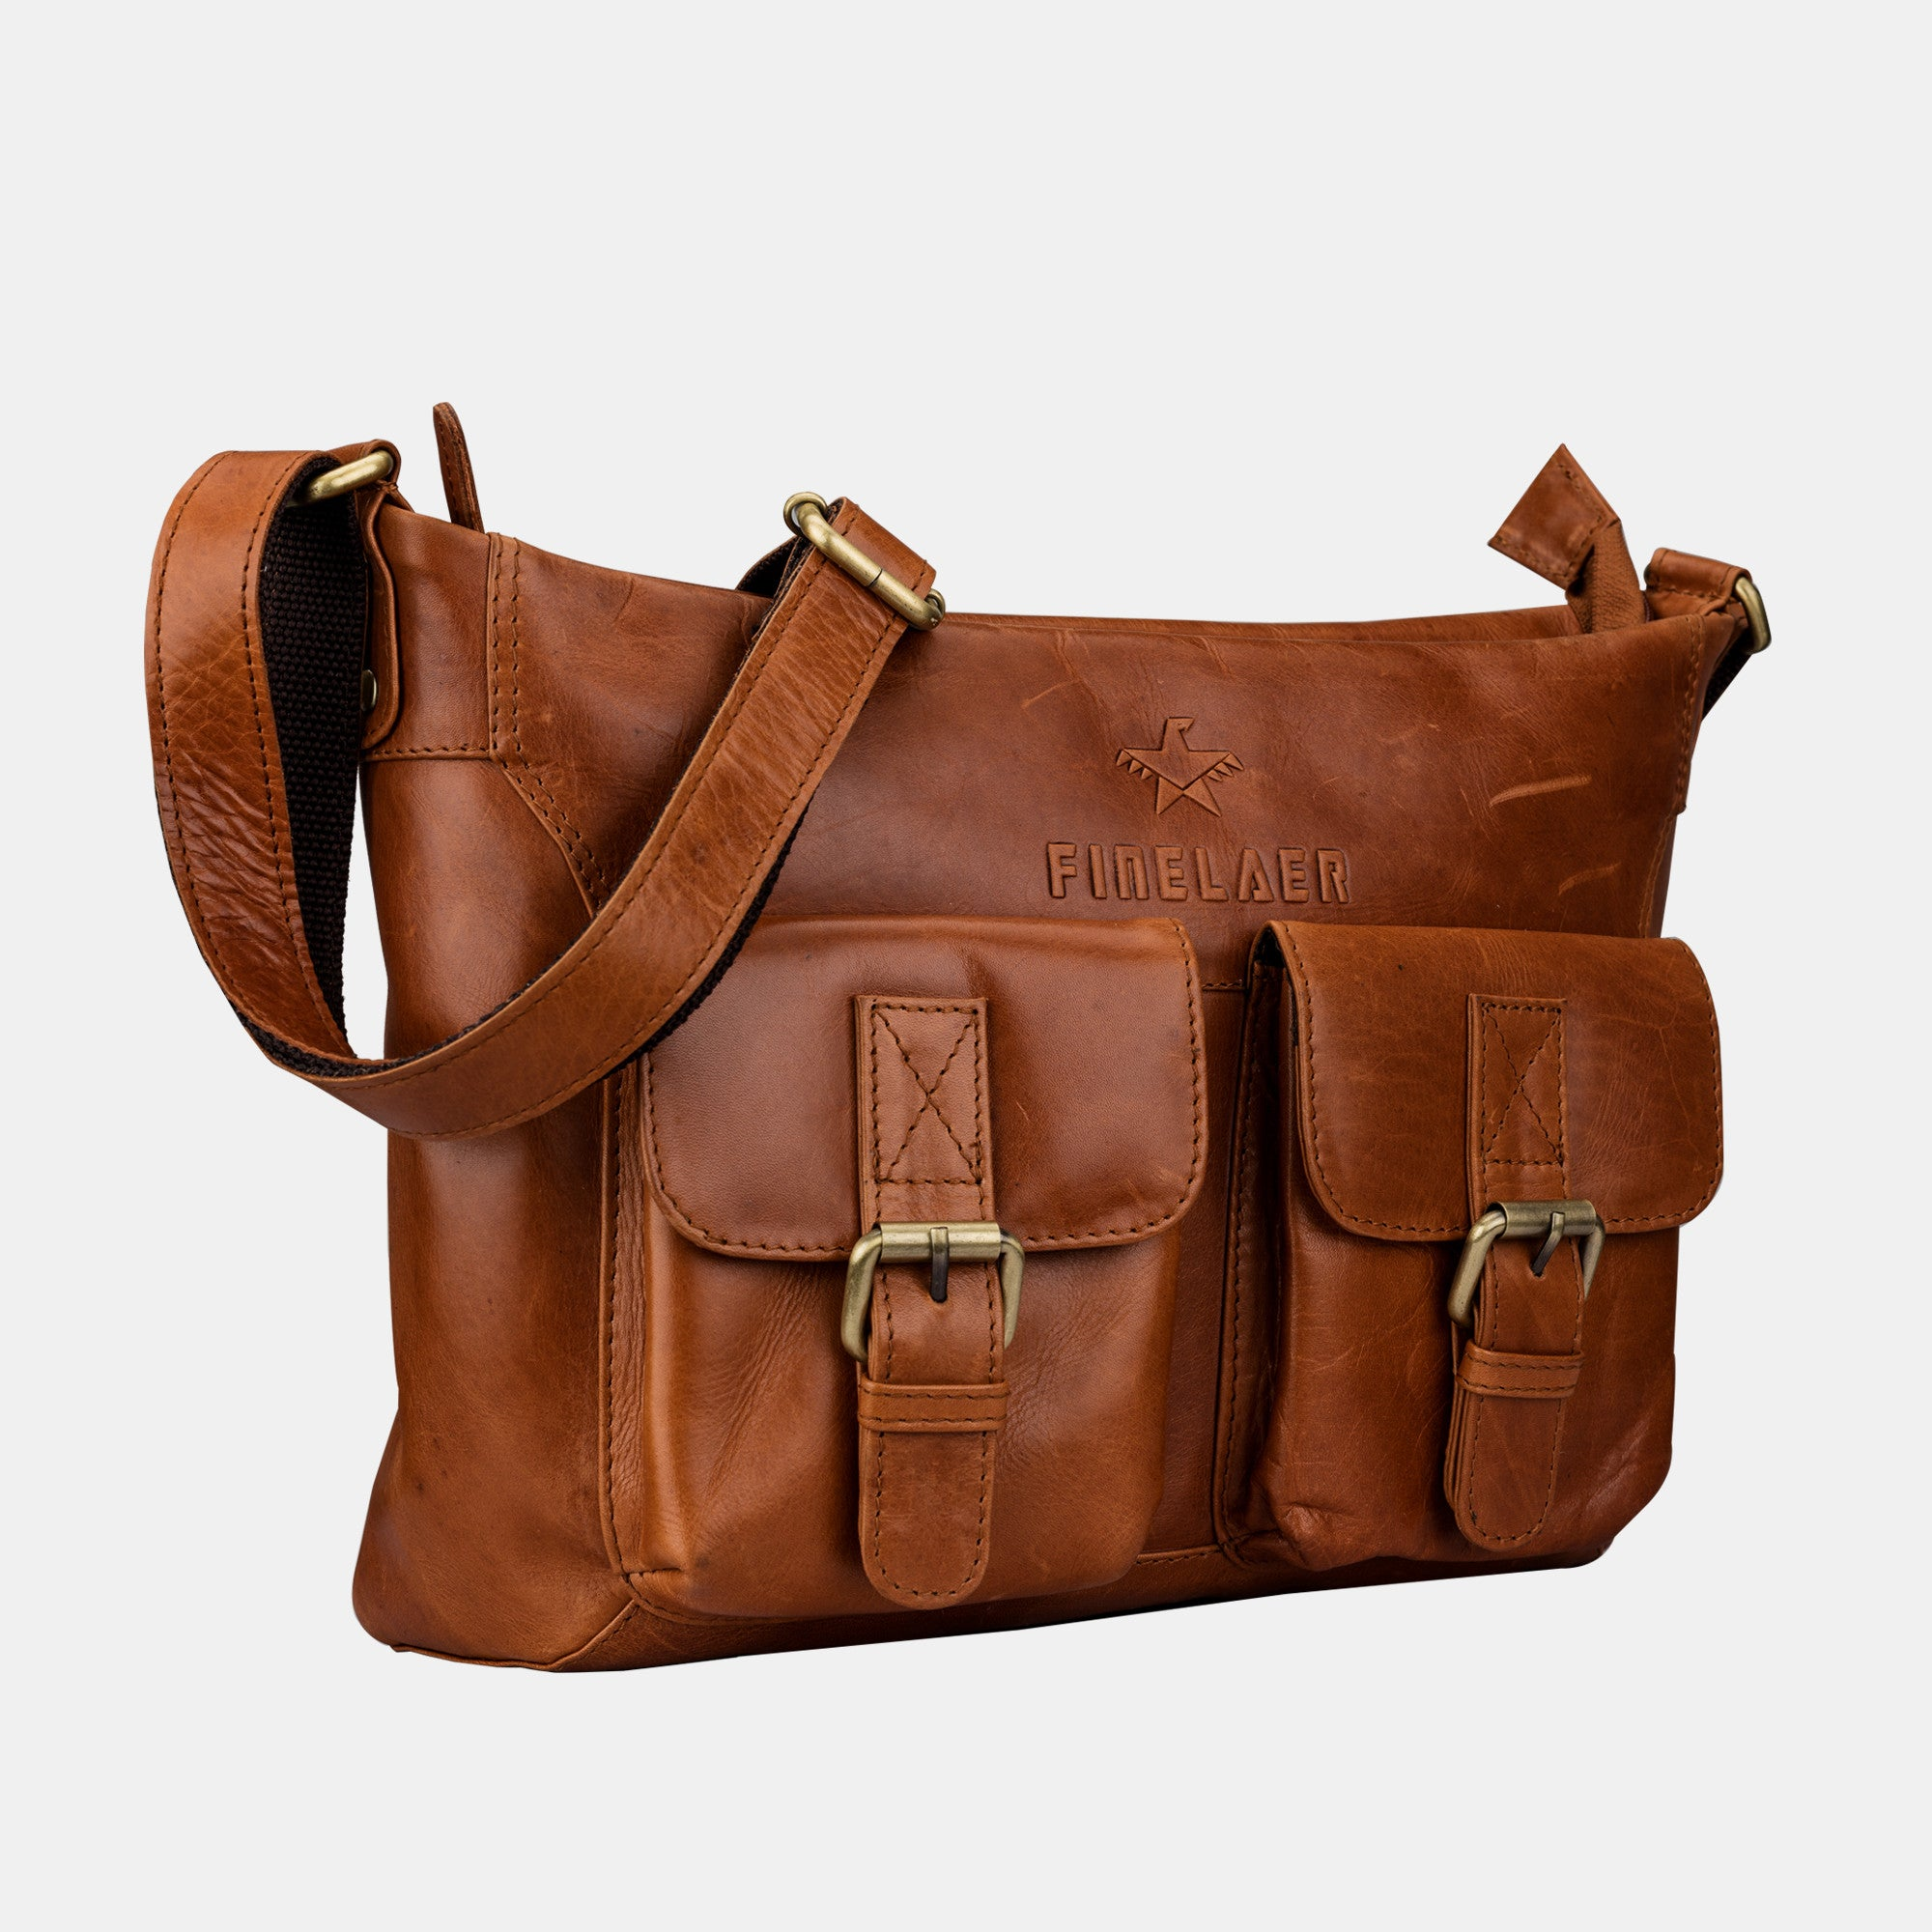 ... Finelaer Women Leather Crossbody Bag with Front Pocket ... e4defb208a8db